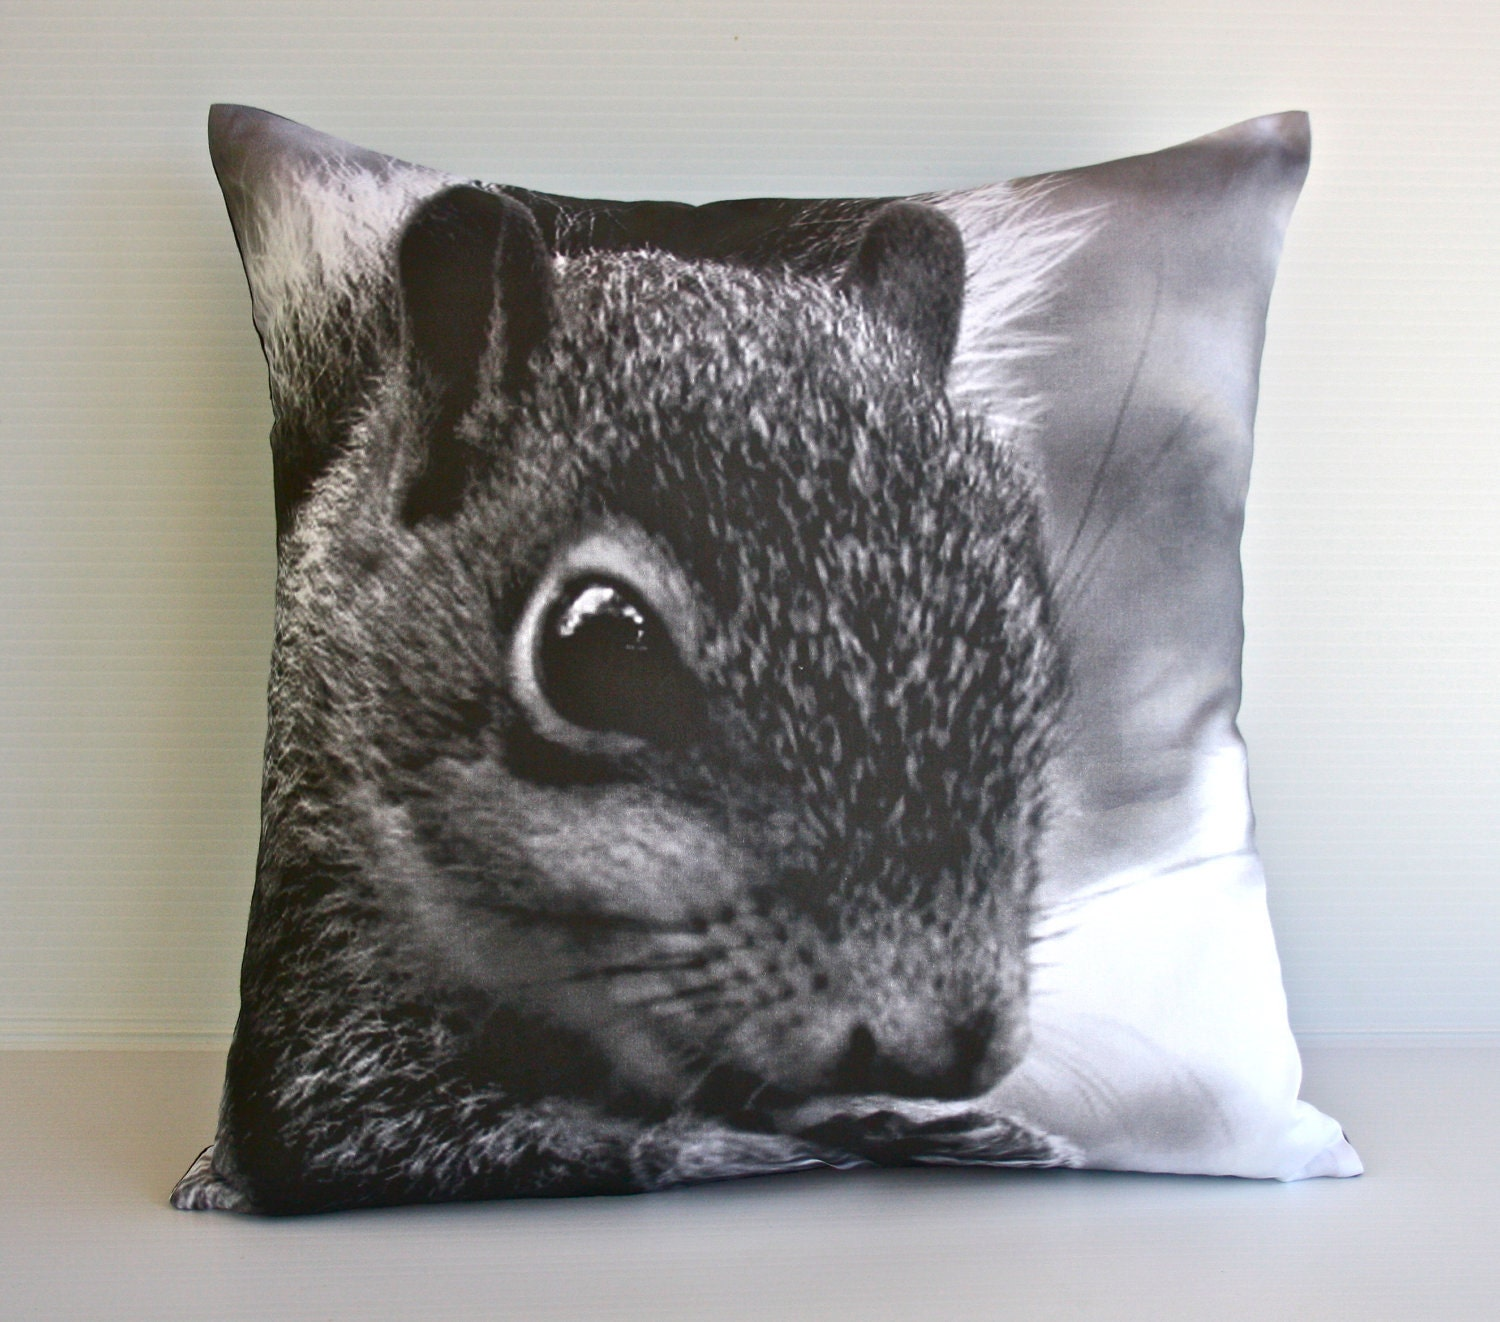 Ornate Animal Pillow Cover Giveaway : 16x16 decorative pillow throw pillow animal by mybeardedpigeon